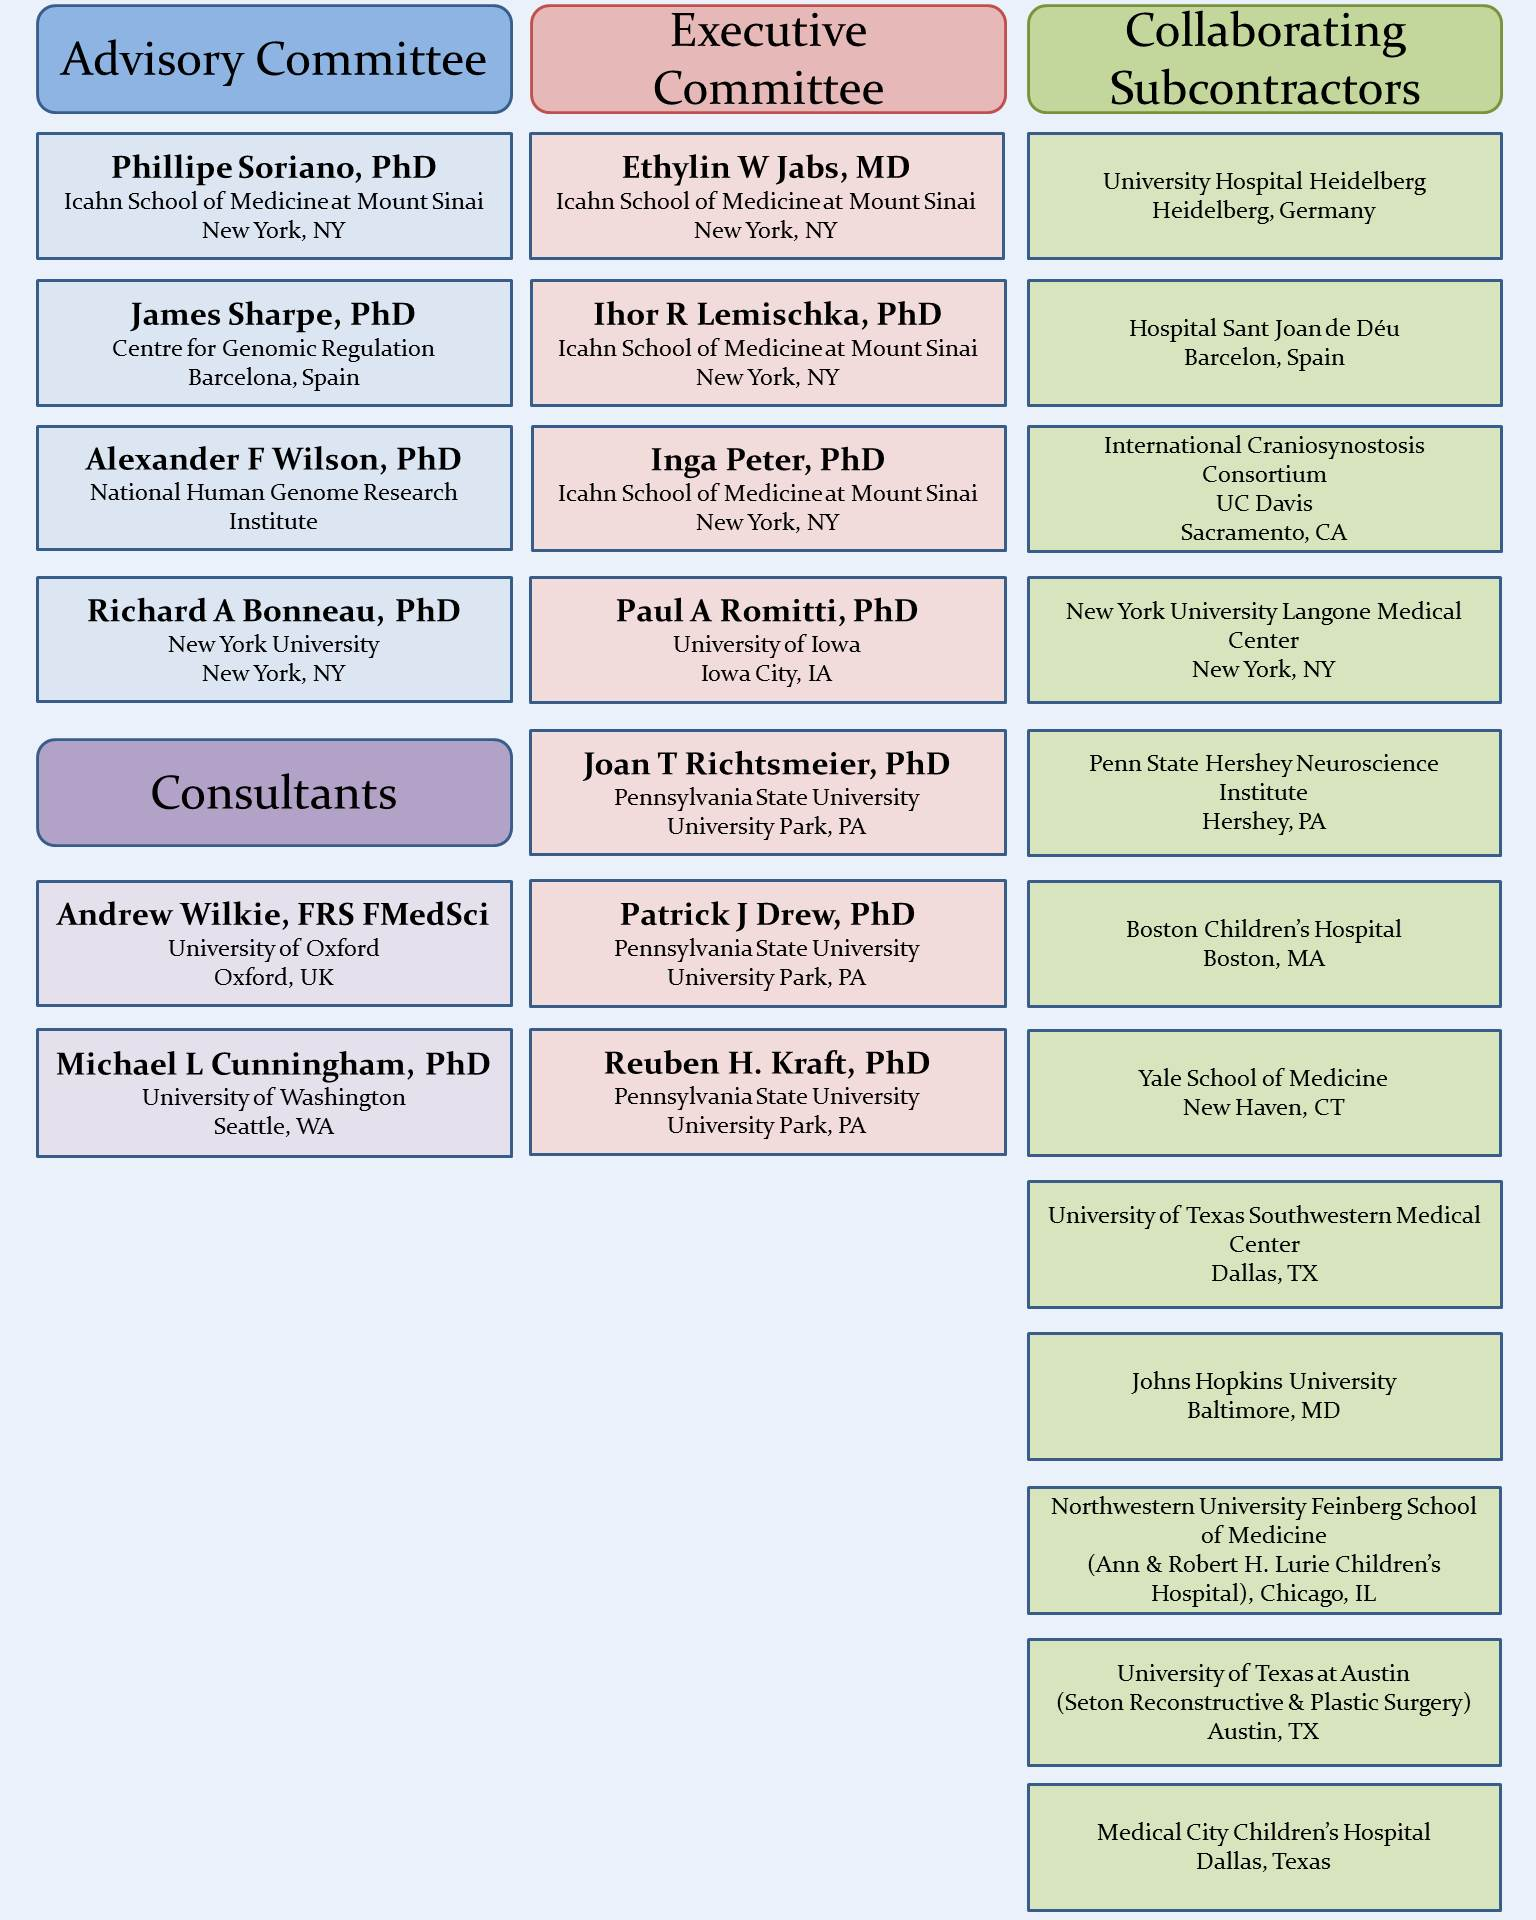 CranioNetwork_Organizational_Chart_Detailed2